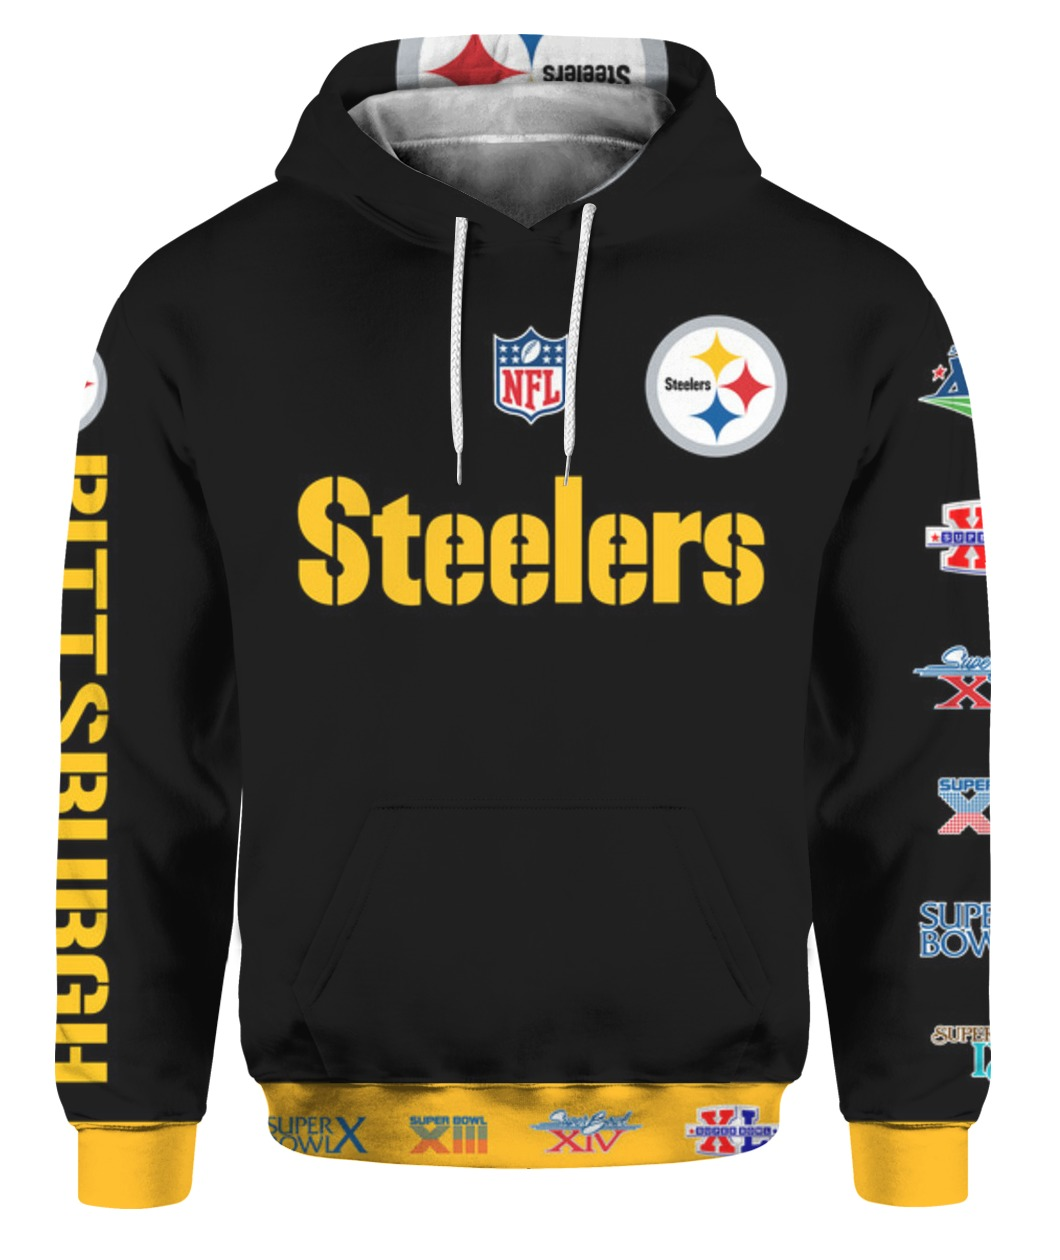 Stand for the flag kneel for the cross pittsburgh steelers all over print hoodie